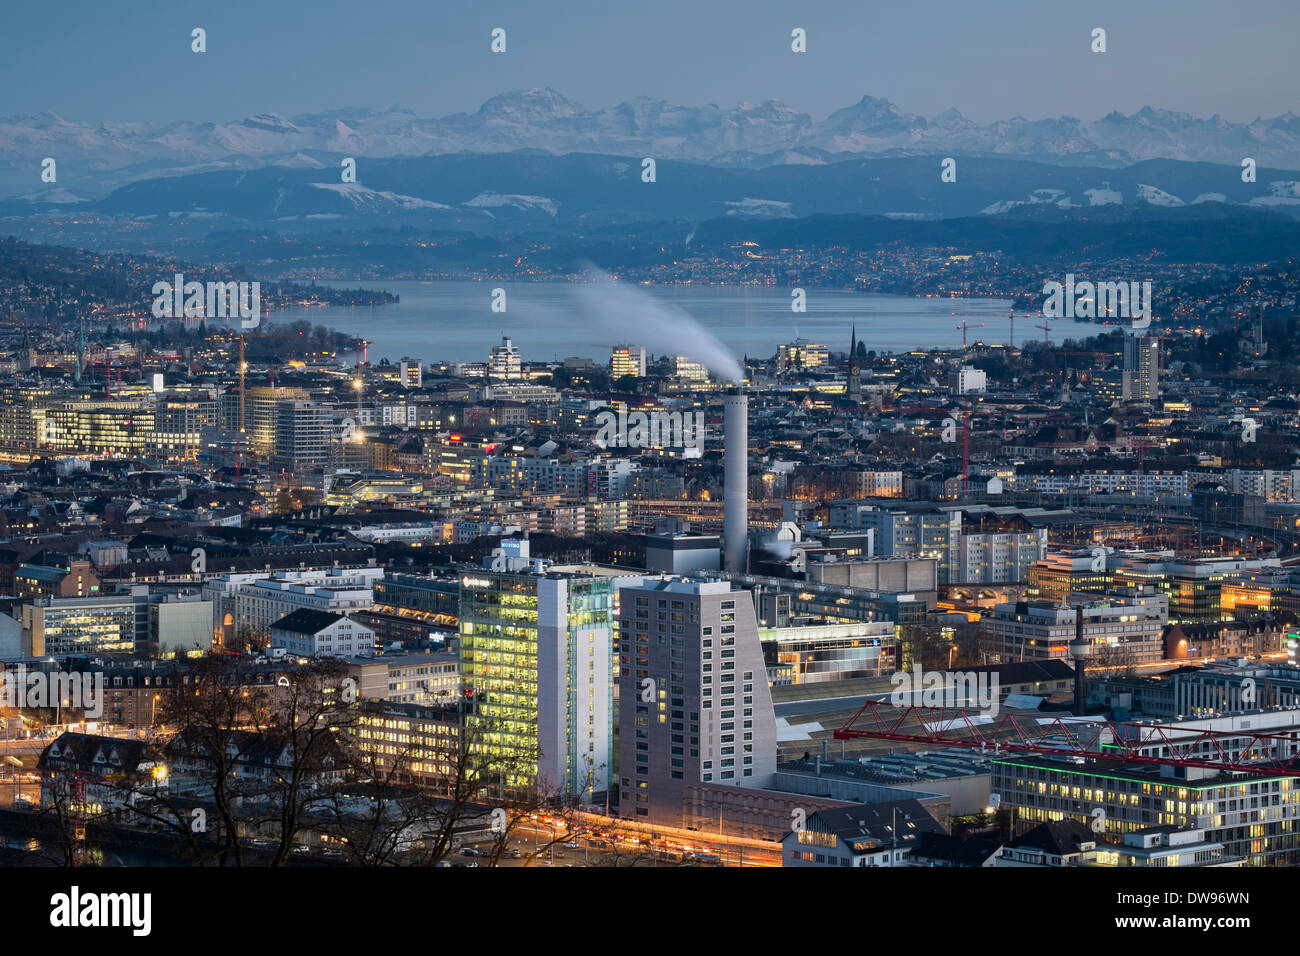 Cityscape, Lake Zurich at the rear, Swiss Alps on the horizon, Zurich, Switzerland - Stock Image